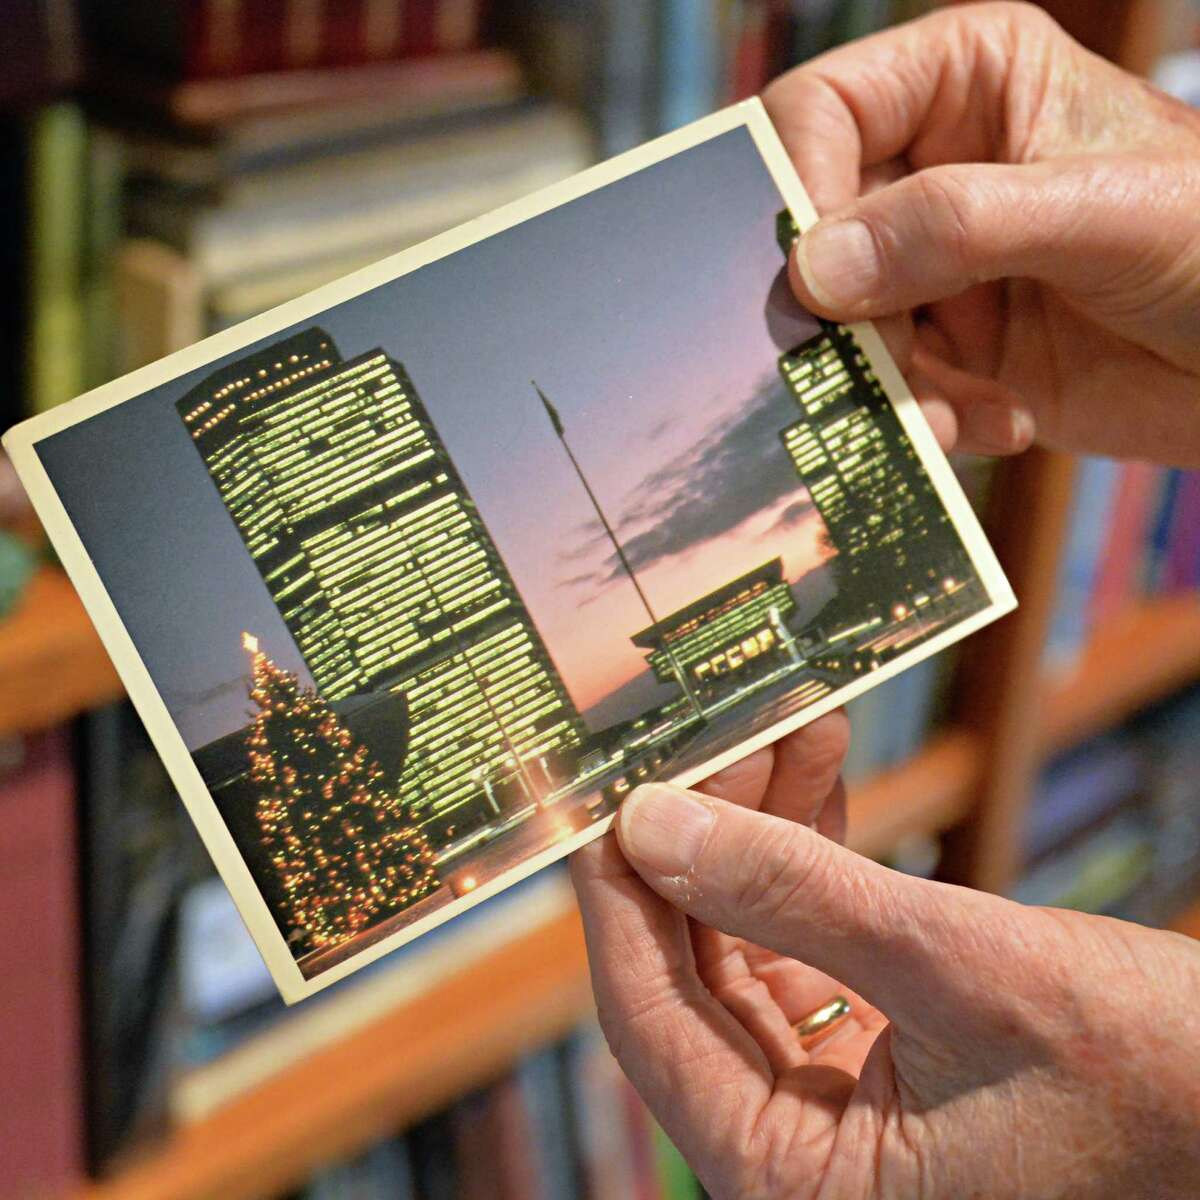 Robert Drew, a deltiologist or postcard collector, holds a postcard of the Empire State Plaza Friday Dec. 5, 2014, in Albany, NY. (John Carl D'Annibale / Times Union) ORG XMIT: ALB1412051630346968